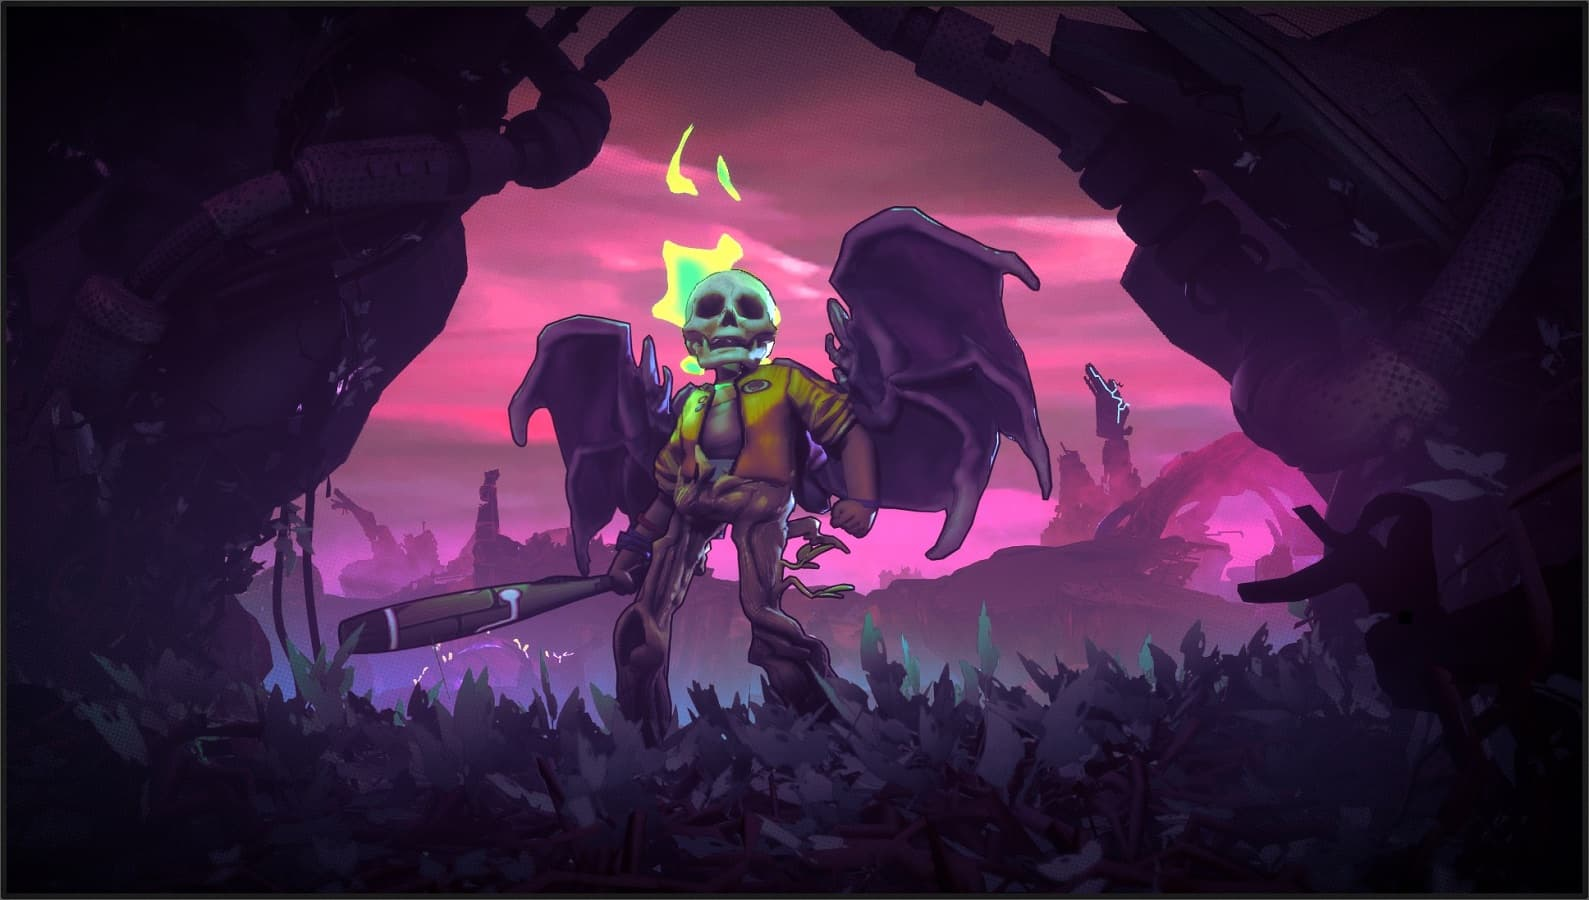 rad from double fine